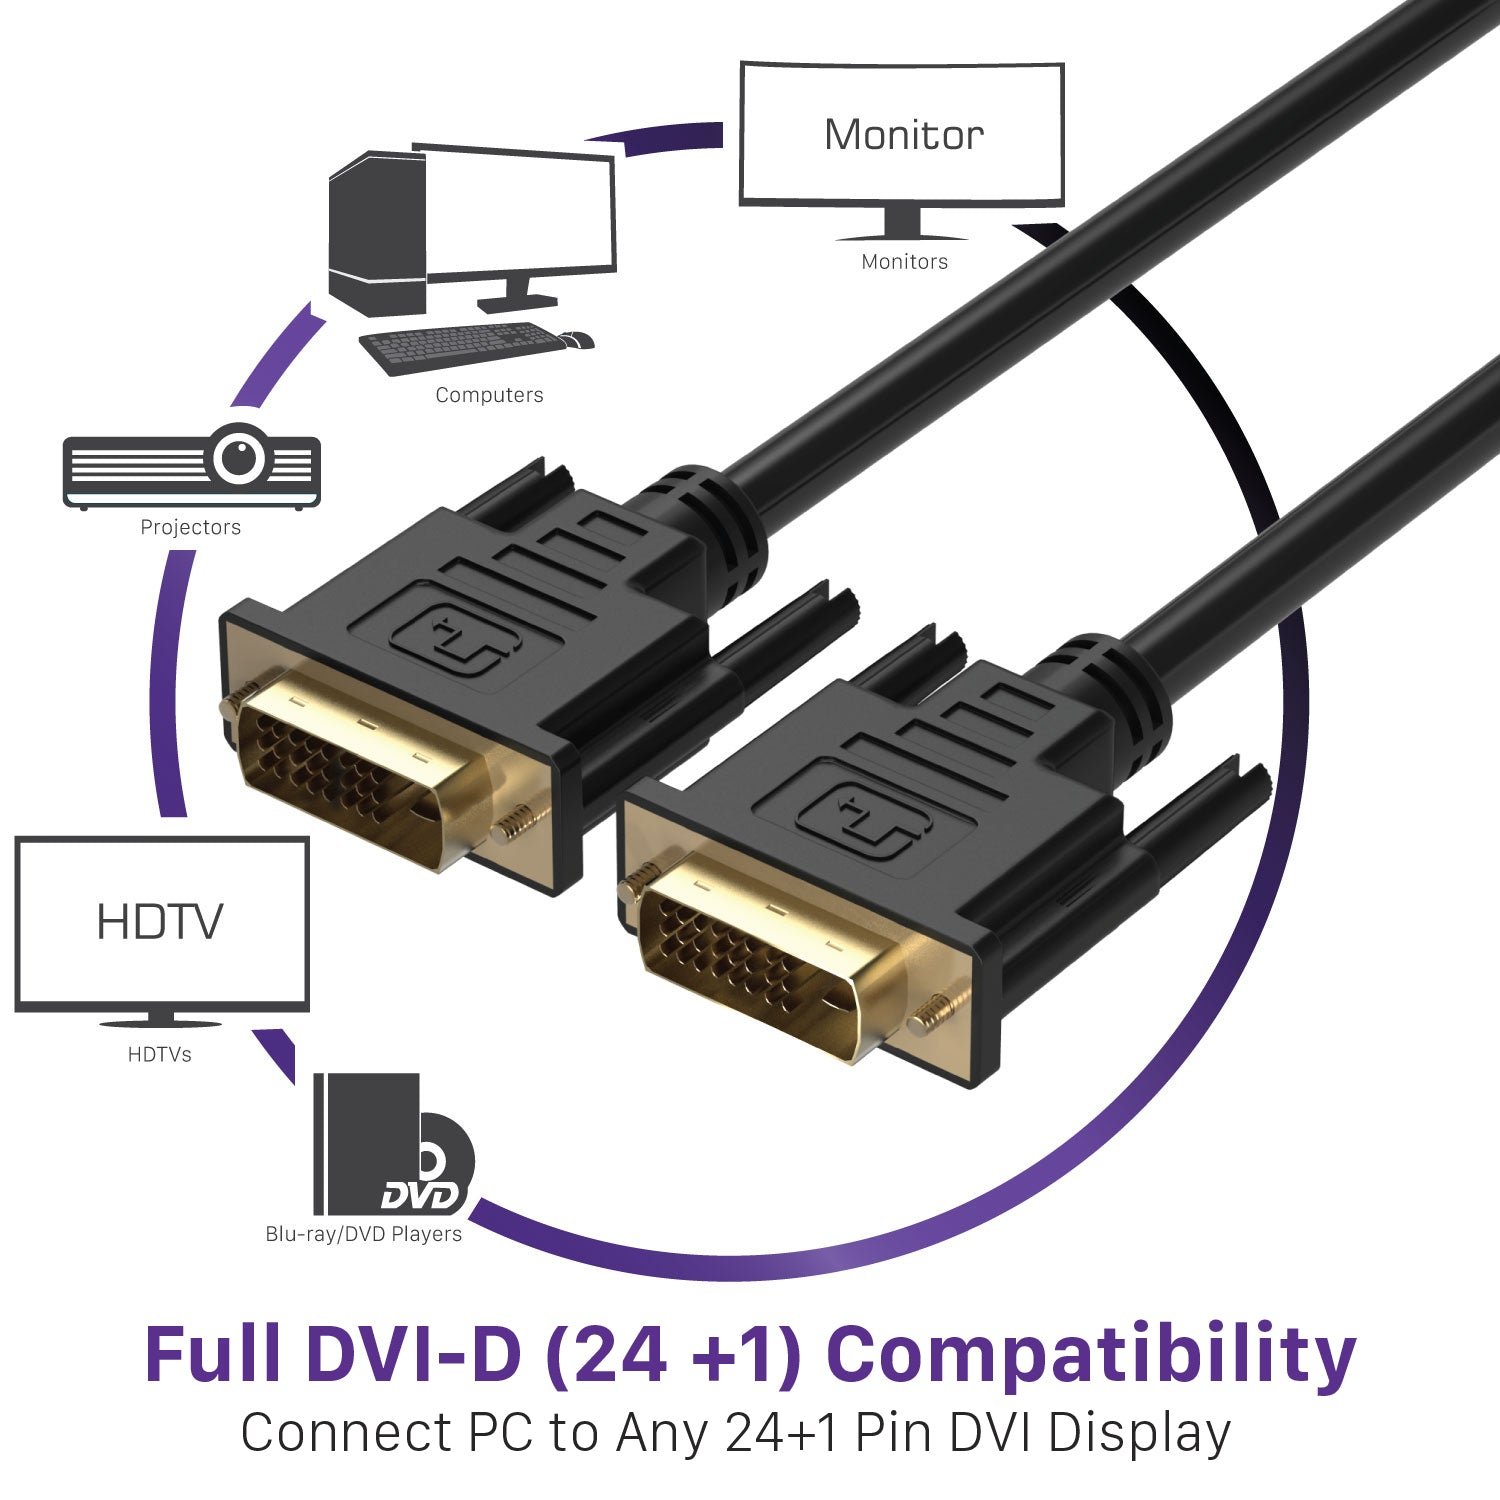 DVI-D Dual Link M/M (24+1 Pin) Cable w/Ferrites and Gold Connector (3Ft, 6Ft, 10Ft, 15Ft, 25Ft, 33Ft)